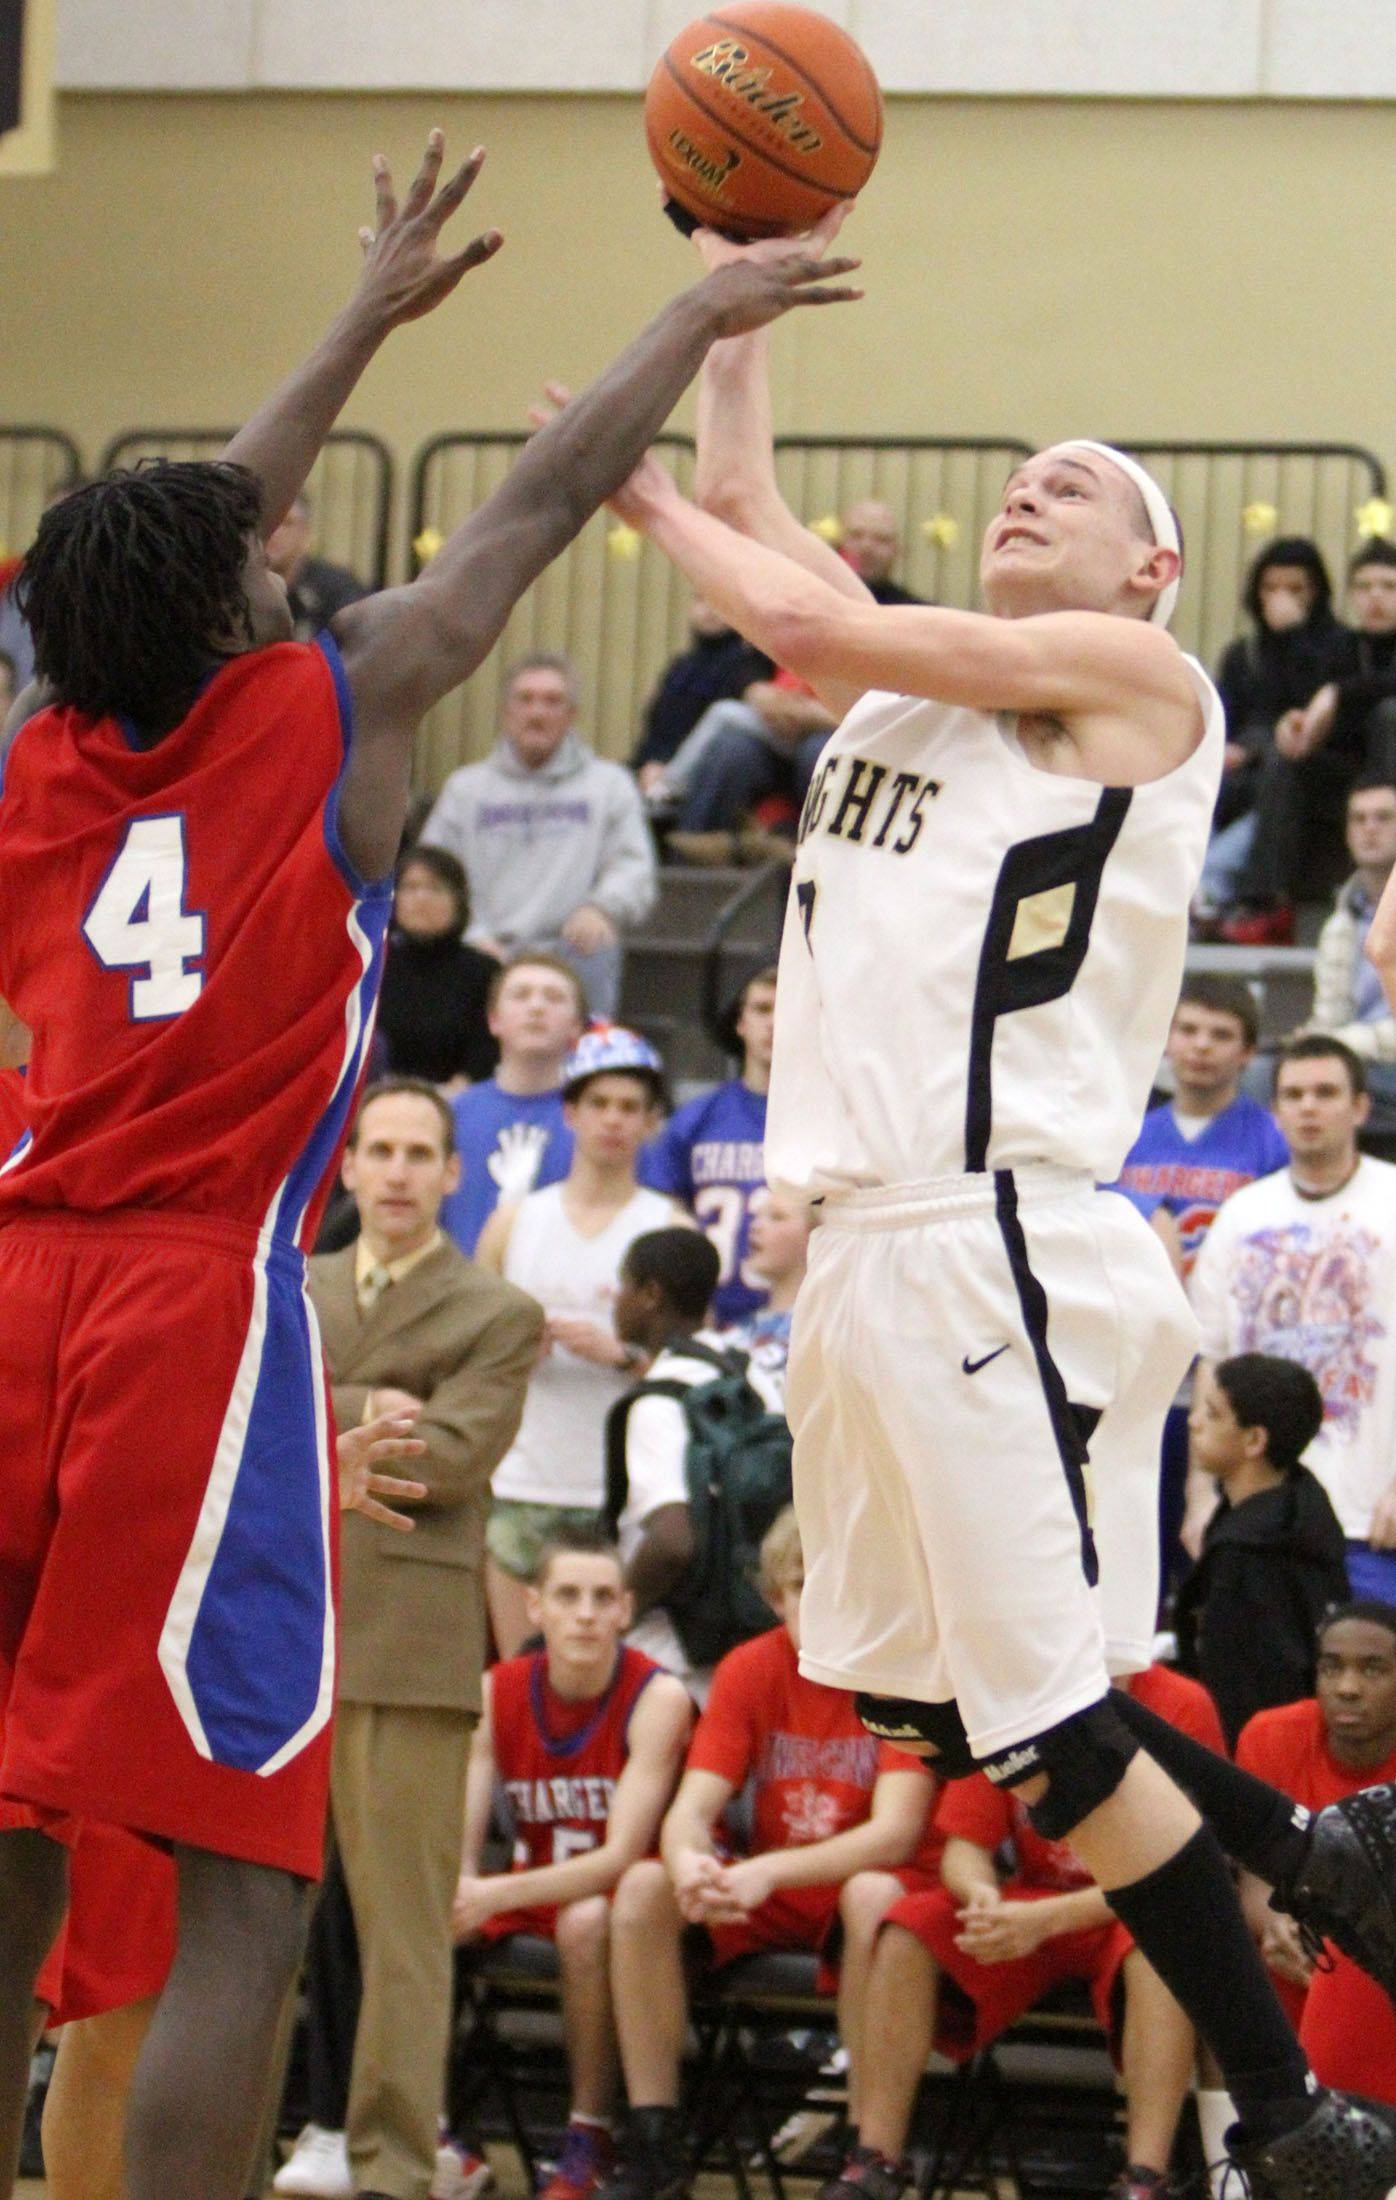 Grayslake North's Teddy Ludwick shoots against Dundee-Crown's Jamel Kimbrough.